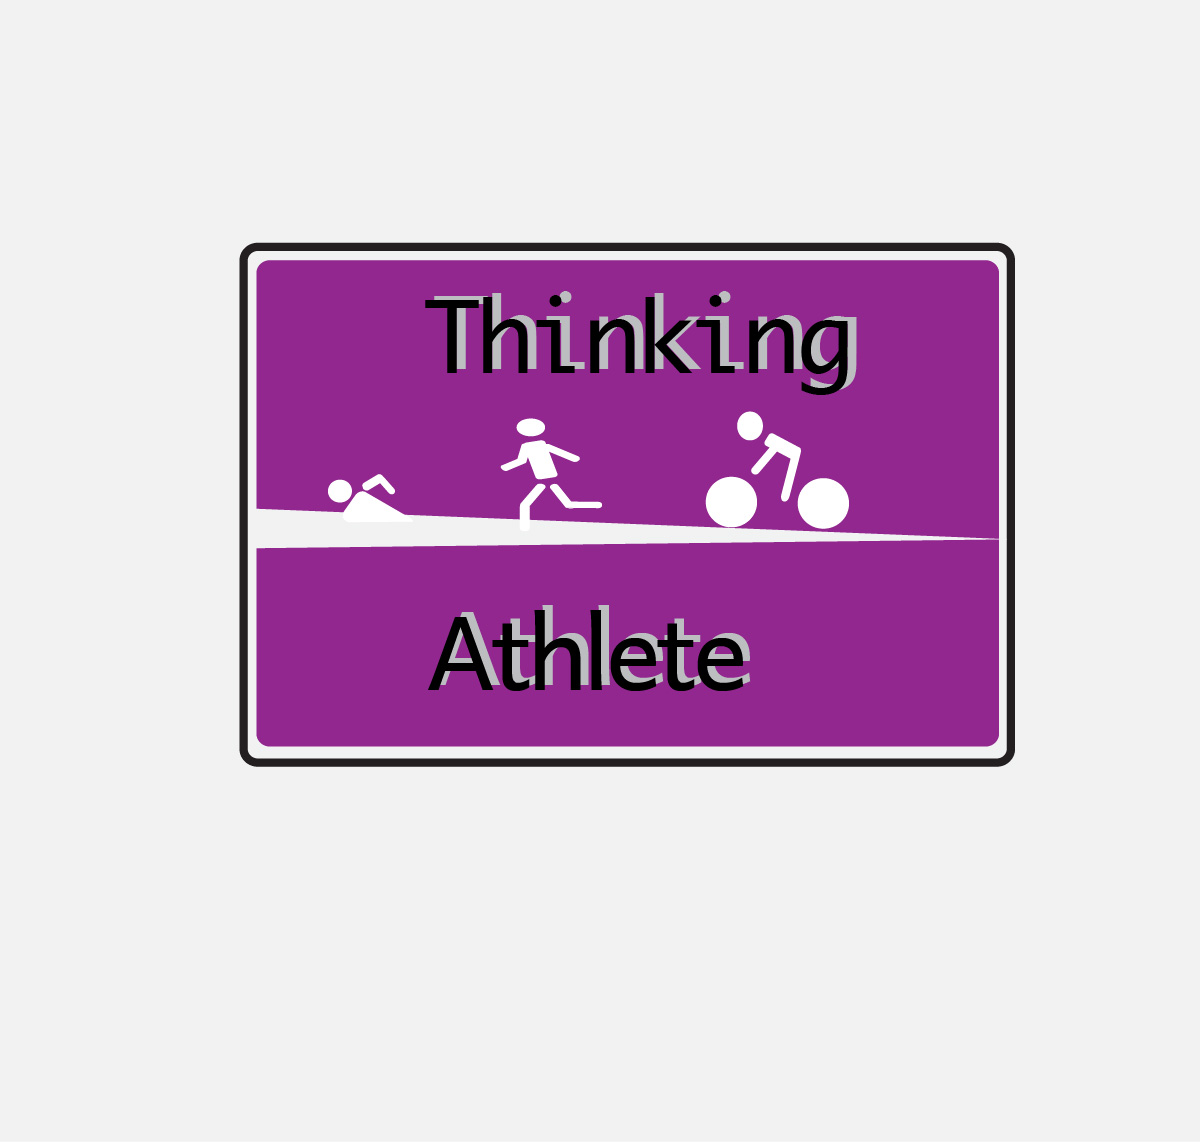 Logo Design by Nancy Grant - Entry No. 42 in the Logo Design Contest Thinking Athlete Logo Design.